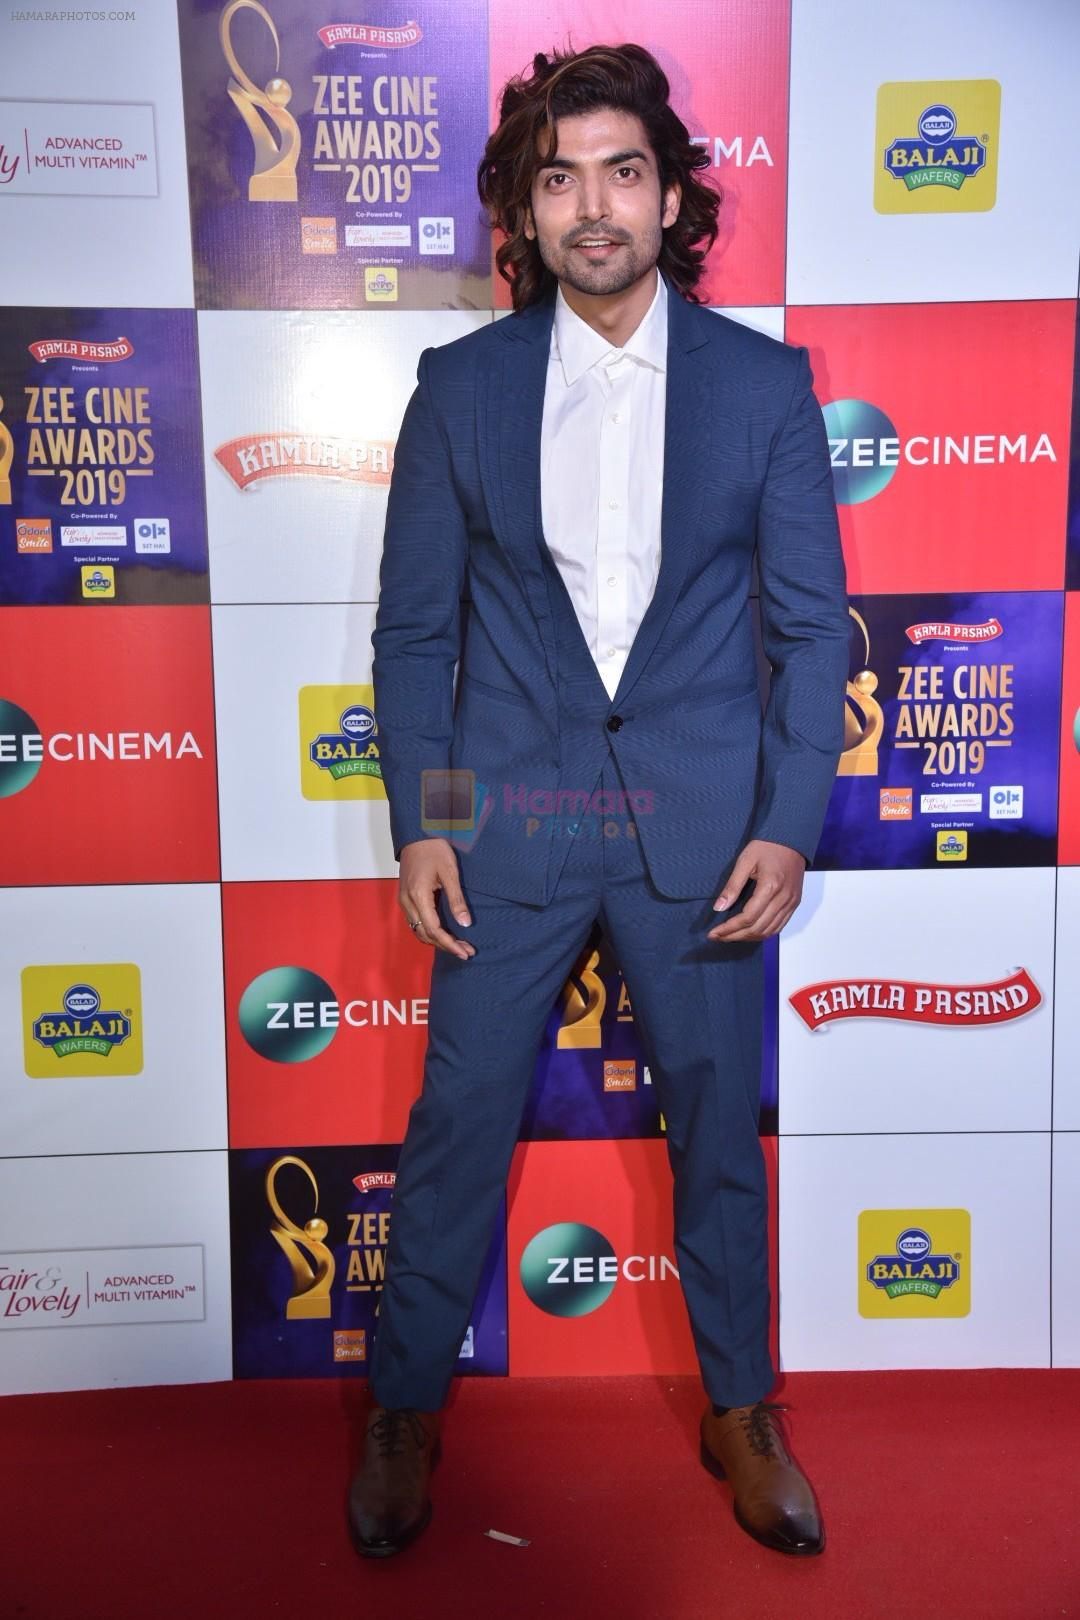 Gurmeet Choudhary at Zee cine awards red carpet on 19th March 2019